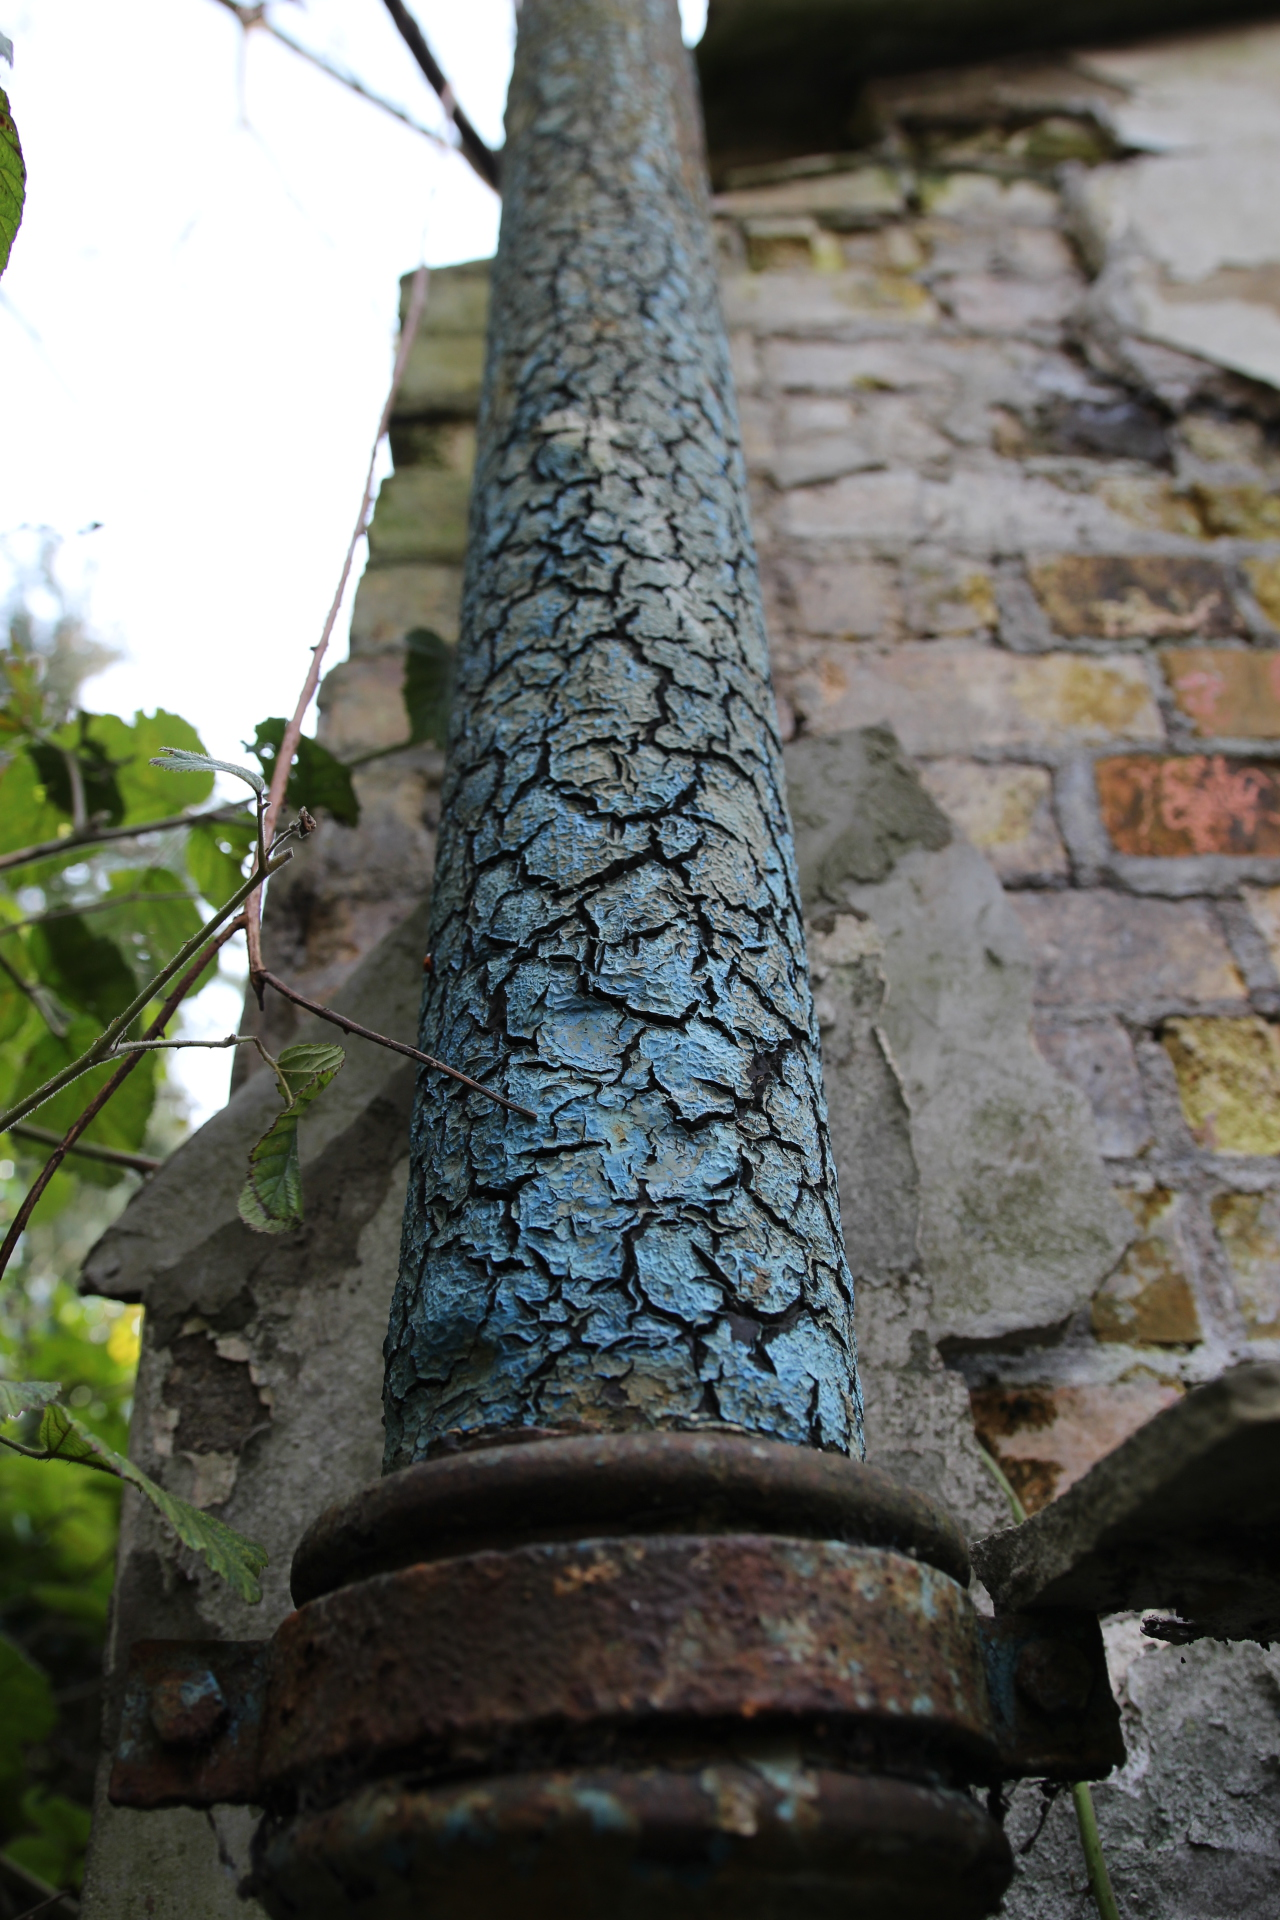 Crackled Paint on Drain Pipe